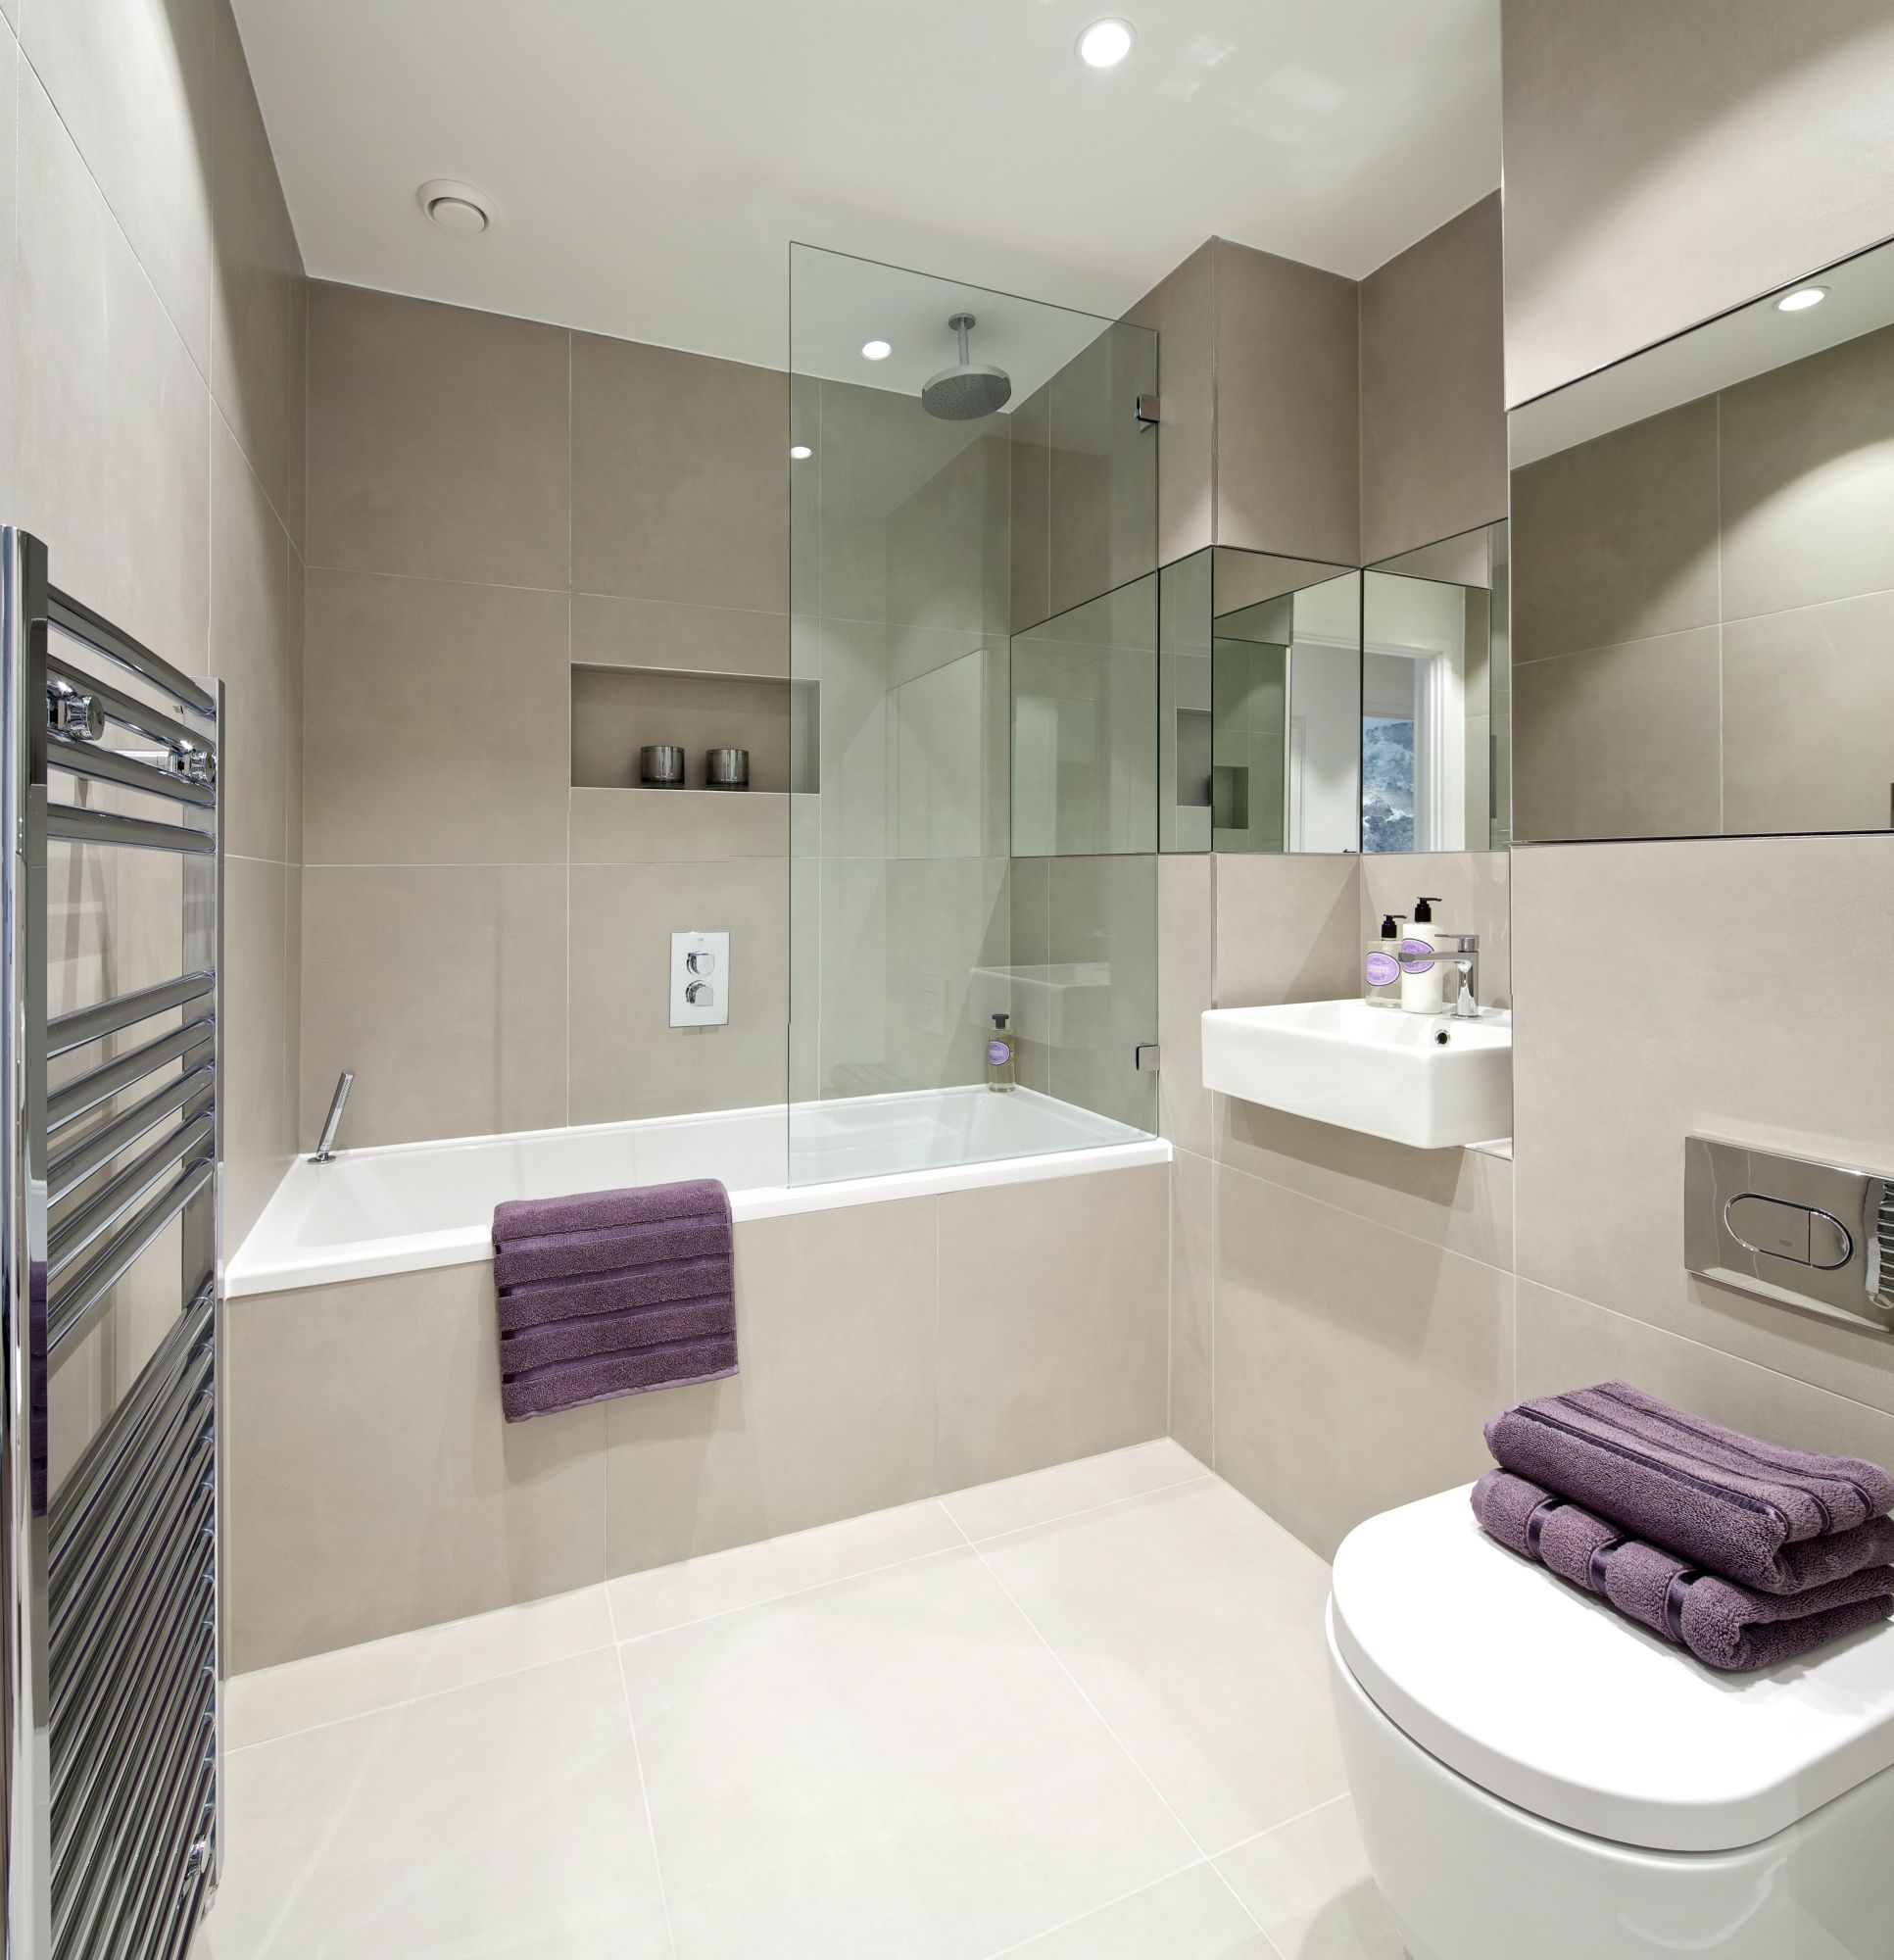 Stunning home interiors bathroom another stunning show for Best bathroom designs pictures